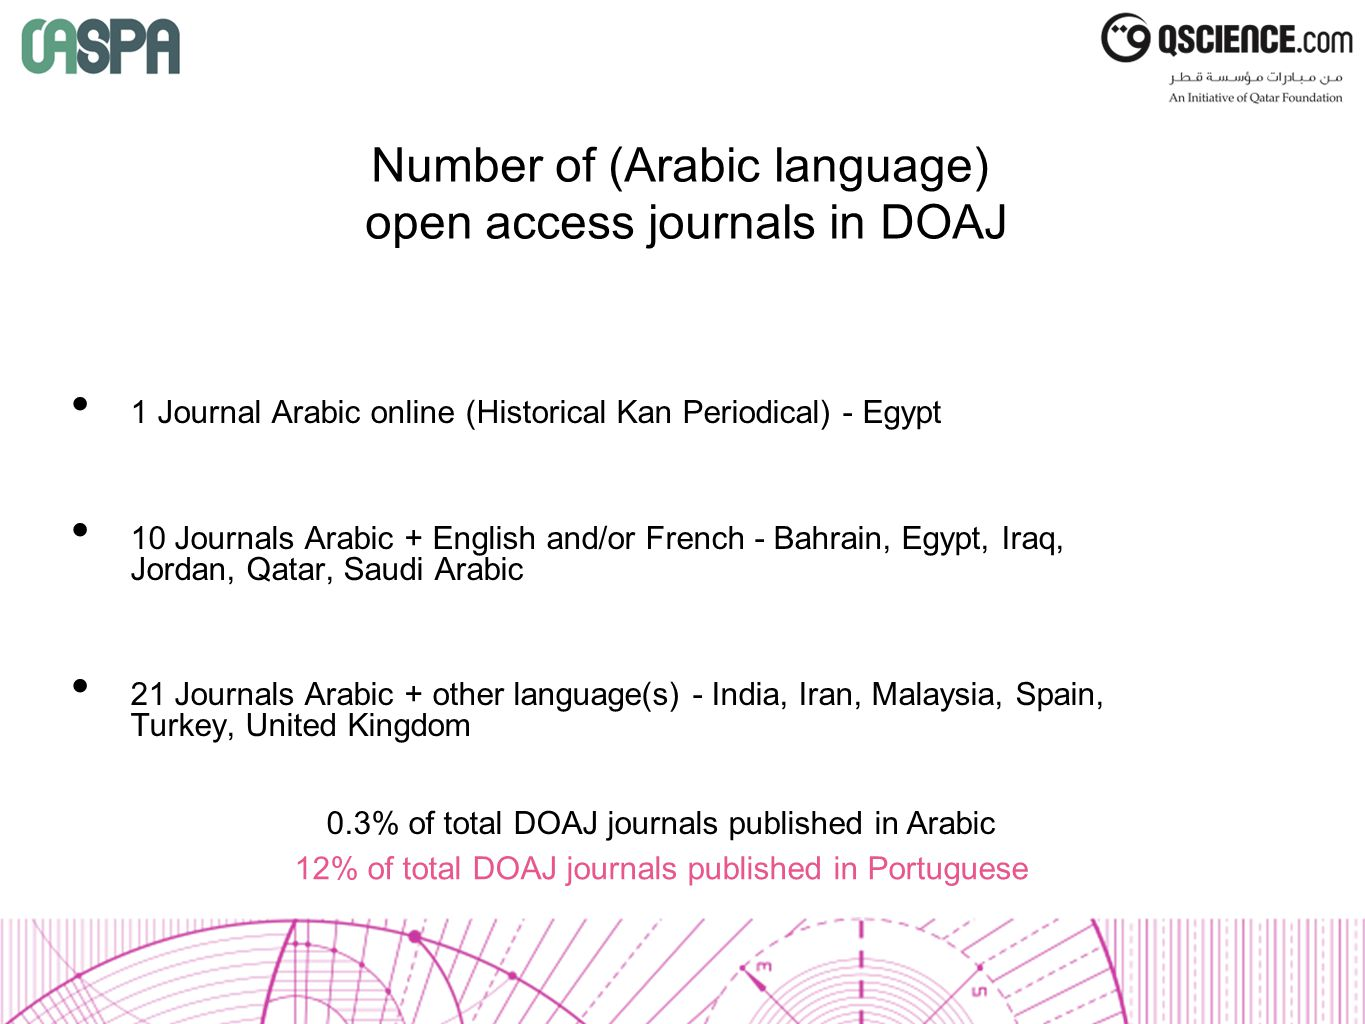 Number of (Arabic language) open access journals in DOAJ 1 Journal Arabic online (Historical Kan Periodical) - Egypt 10 Journals Arabic + English and/or French - Bahrain, Egypt, Iraq, Jordan, Qatar, Saudi Arabic 21 Journals Arabic + other language(s) - India, Iran, Malaysia, Spain, Turkey, United Kingdom 0.3% of total DOAJ journals published in Arabic 12% of total DOAJ journals published in Portuguese